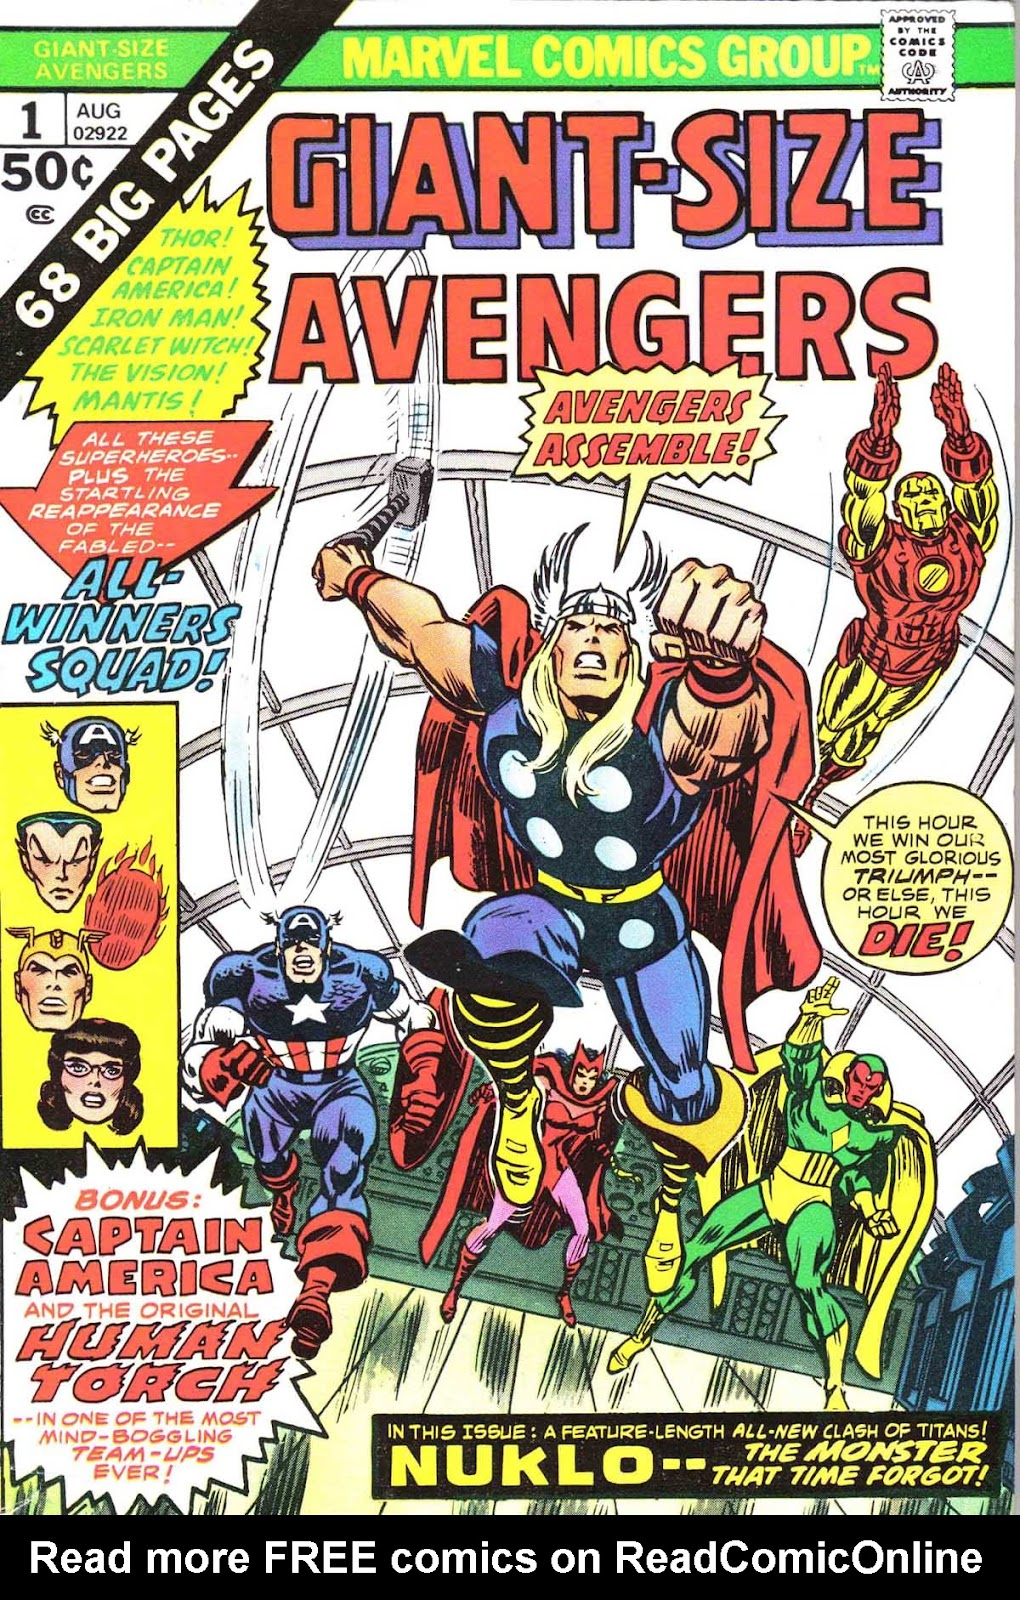 Giant-Size Avengers (1974) 1 Page 1